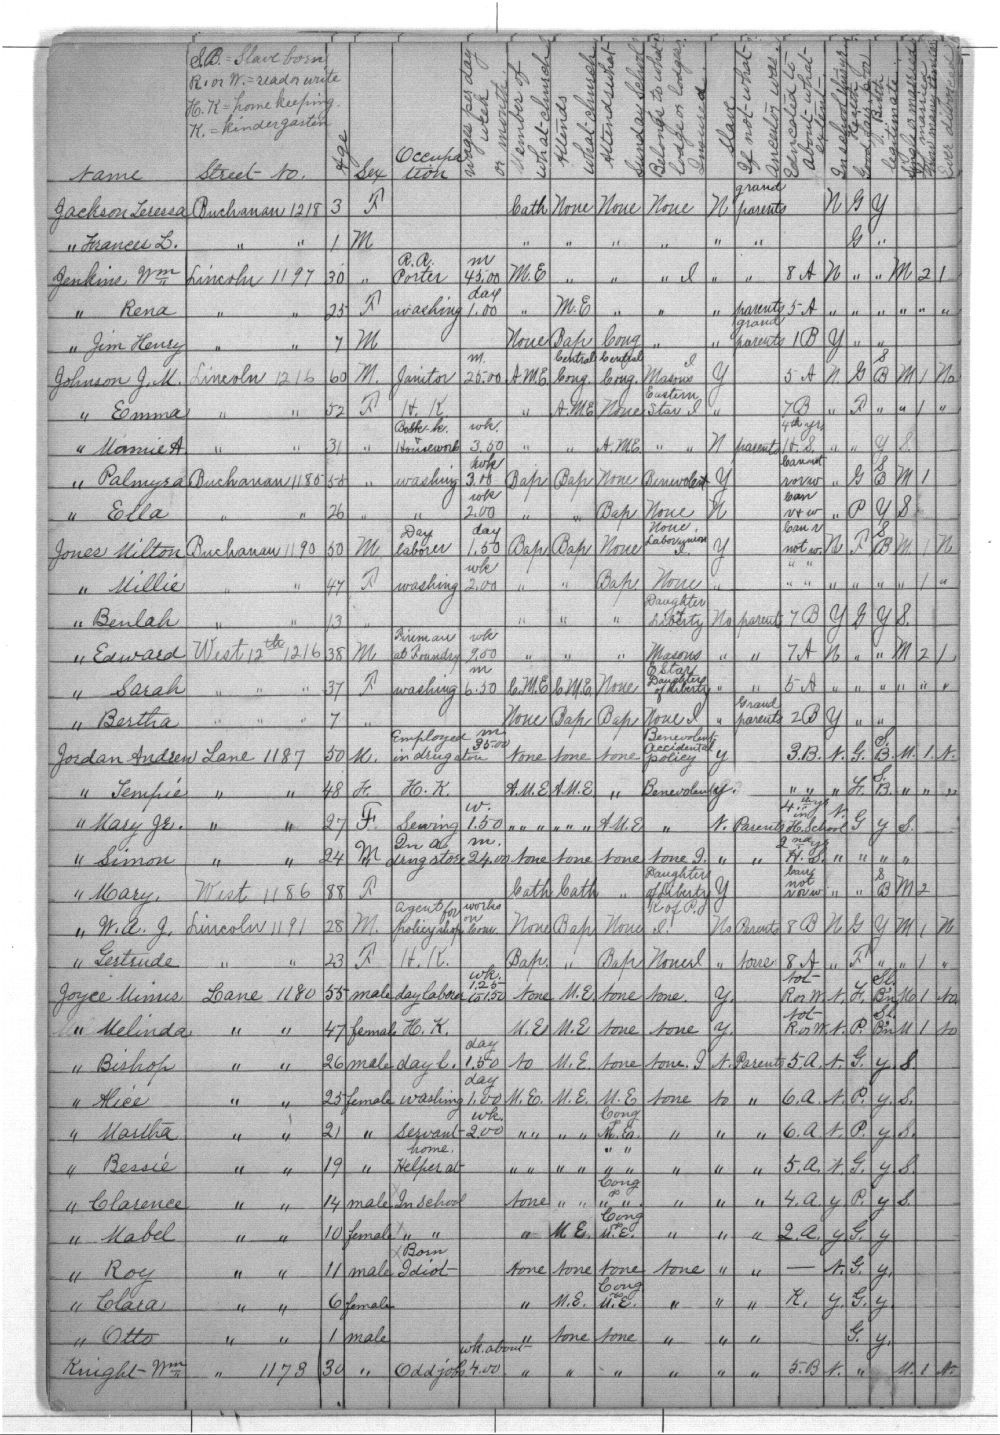 Tennessee Town census - 7